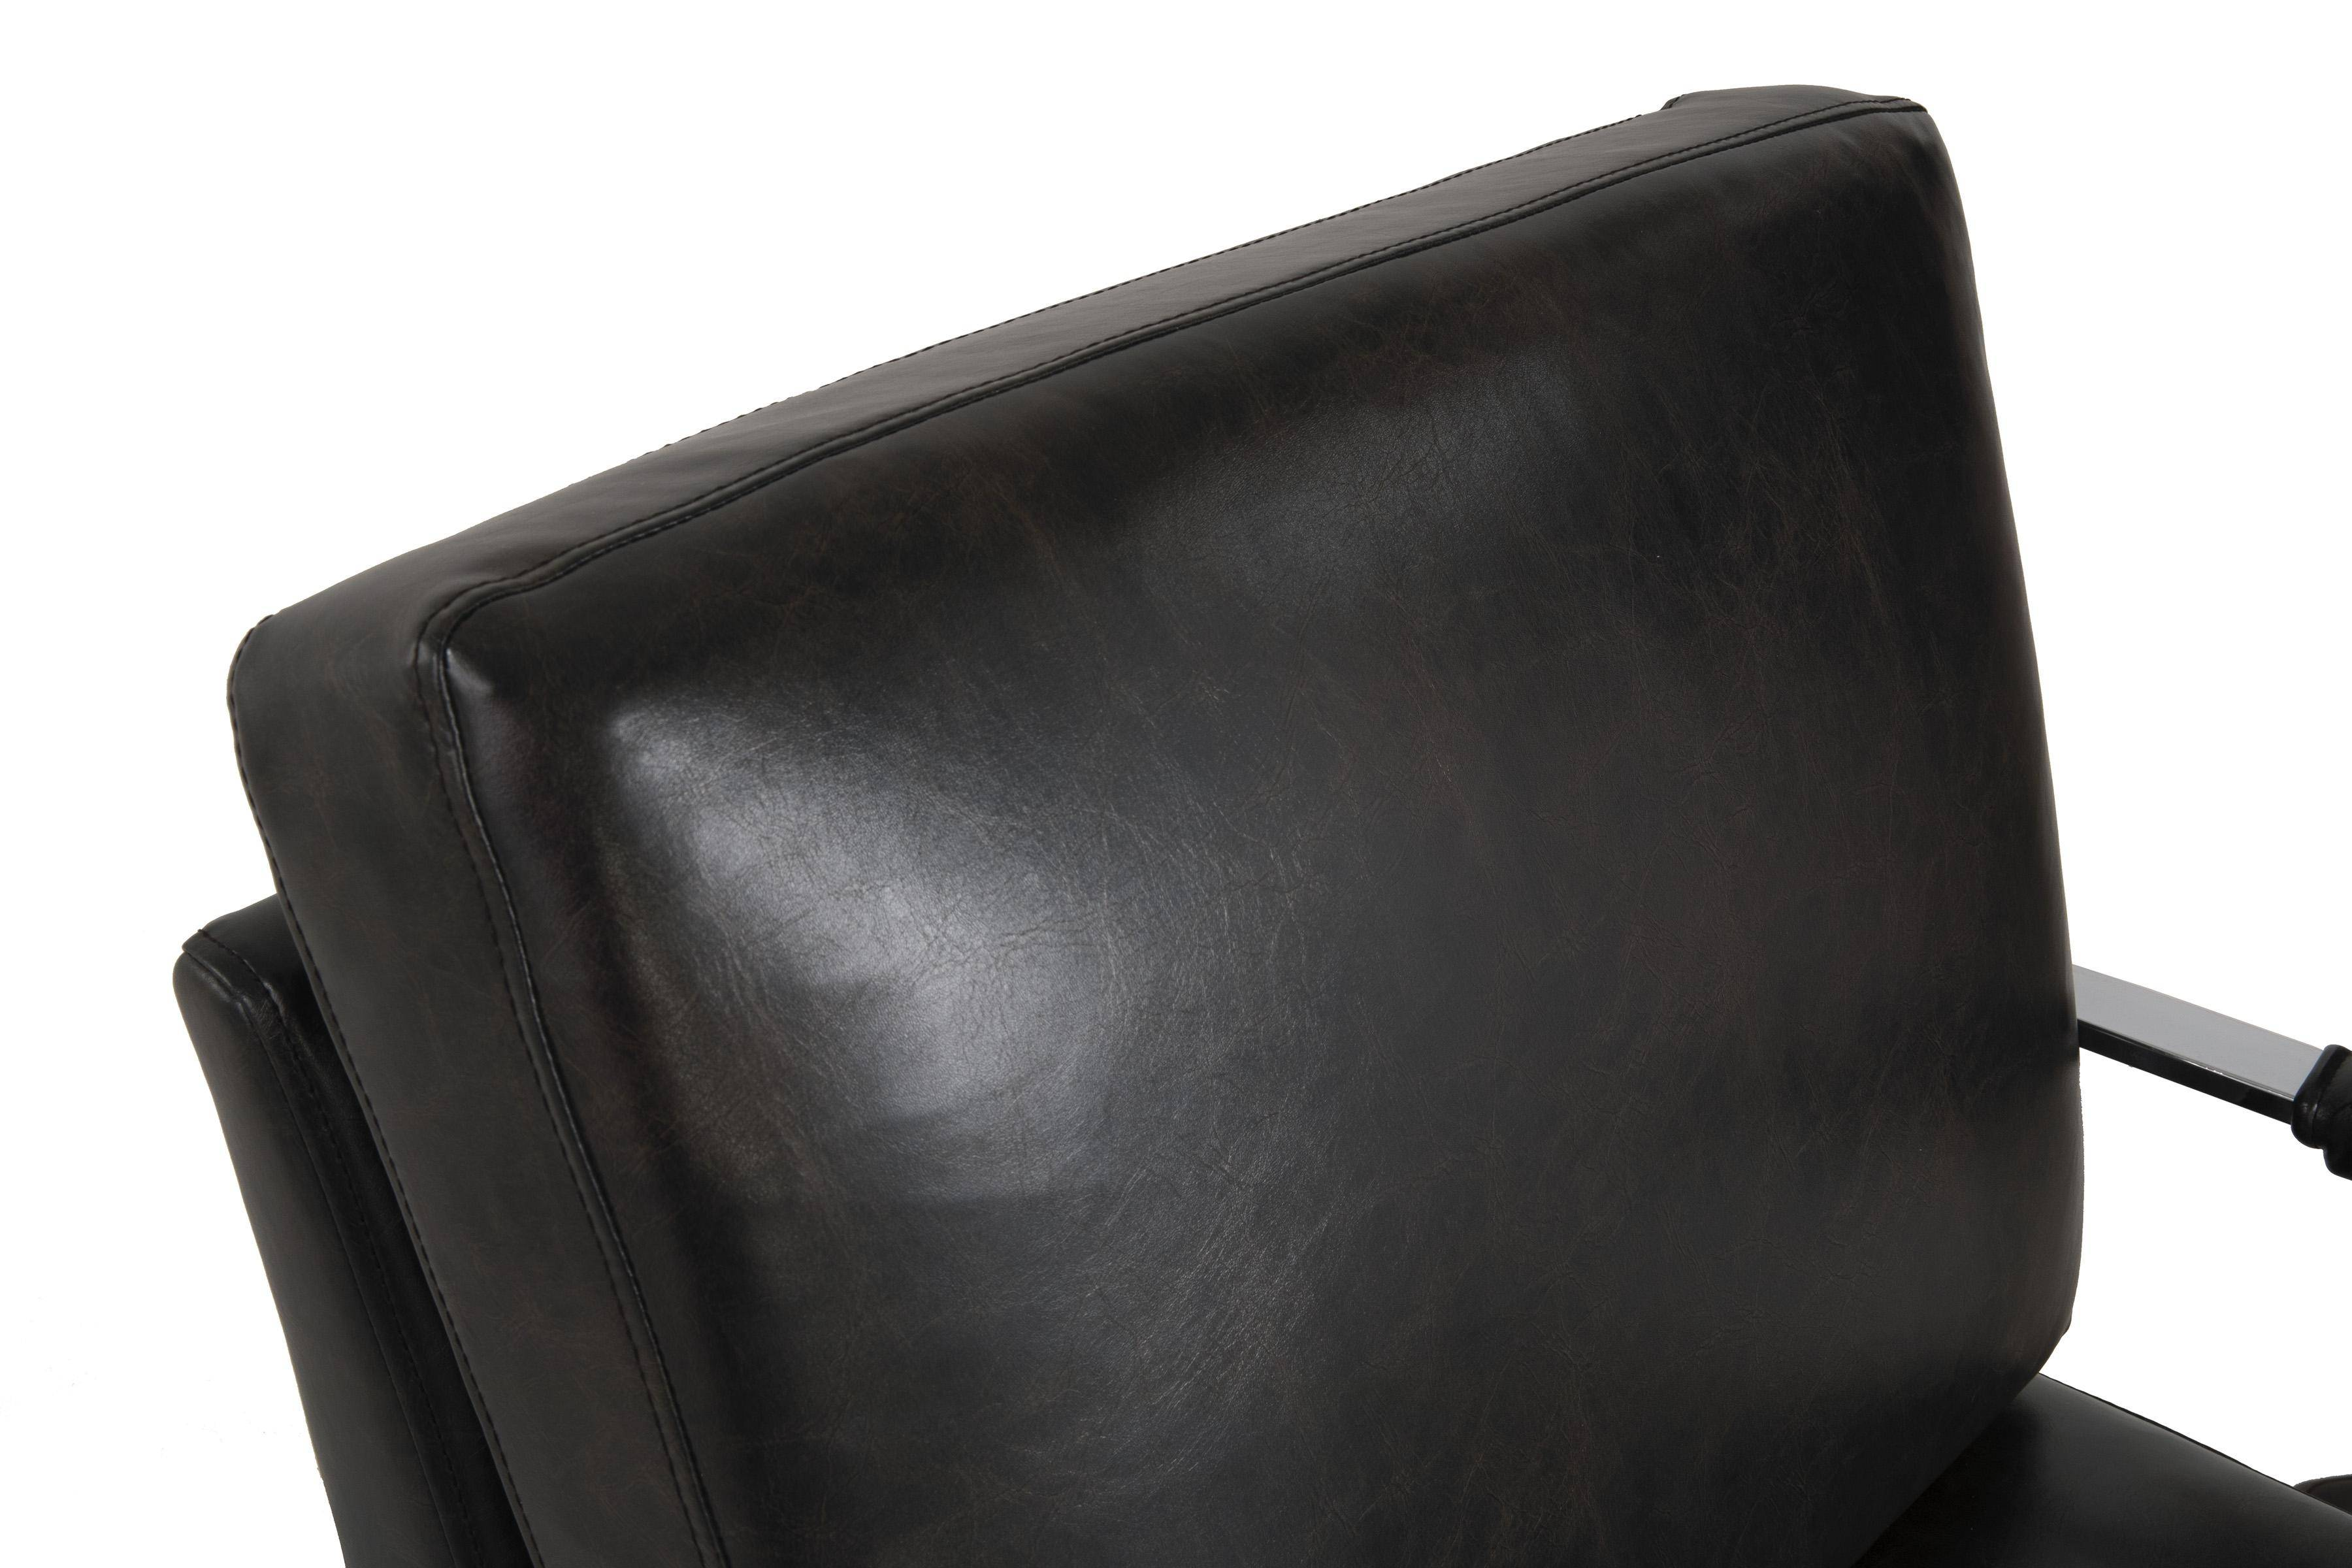 Stupendous Ashley Network A3000028 Accent Chair In Black Faux Leather Ibusinesslaw Wood Chair Design Ideas Ibusinesslaworg